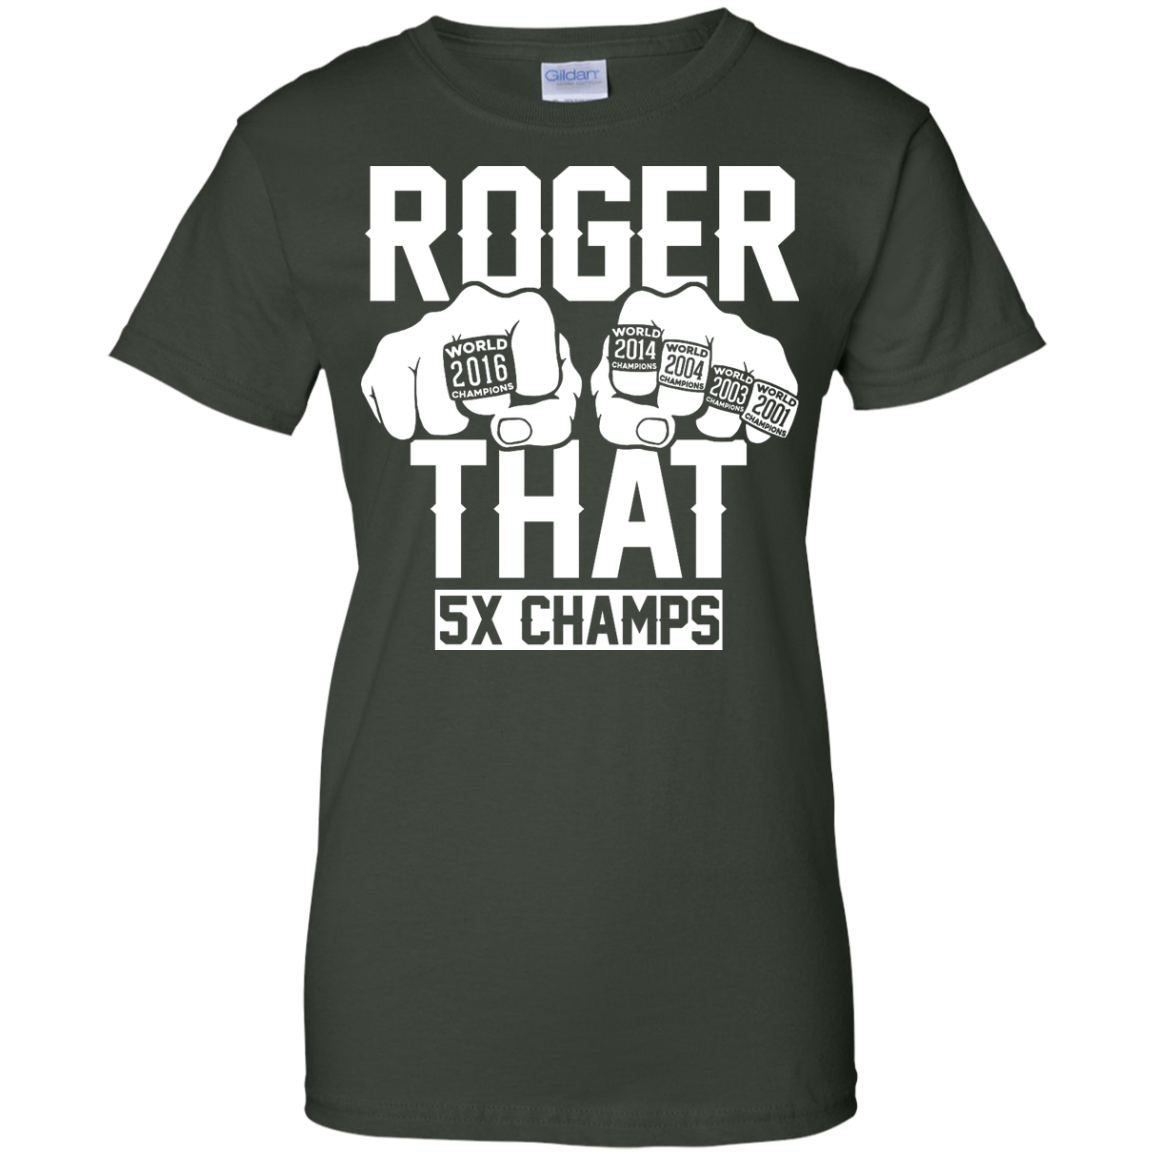 image 848px Roger That 5x Champs – Brady Trolls Goodell T Shirts